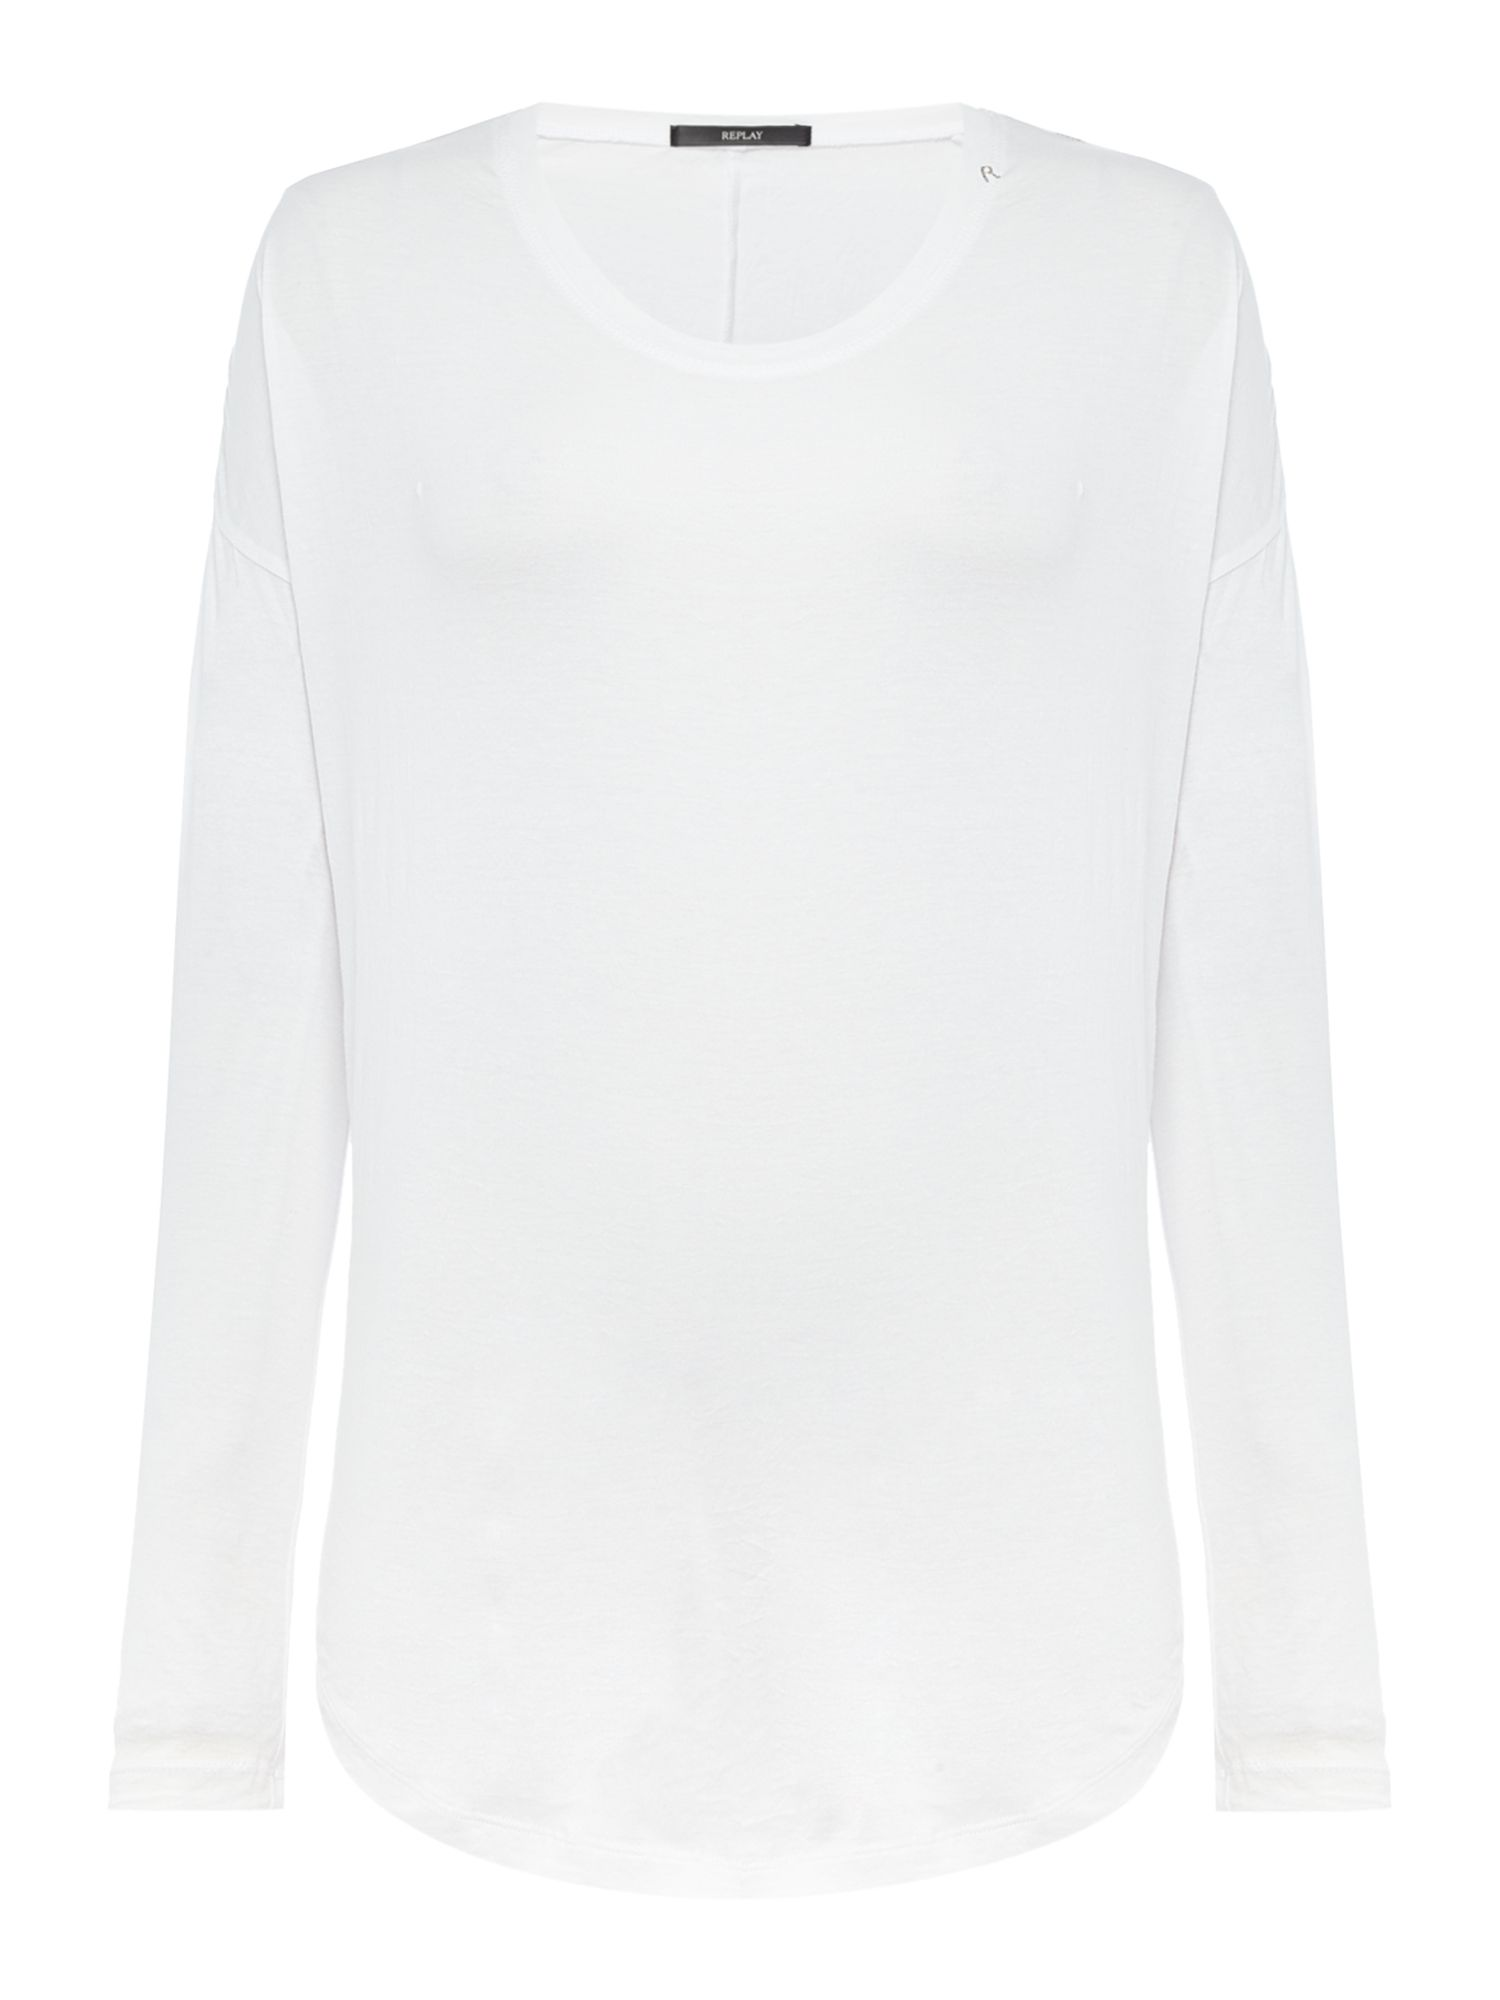 Replay Comfort-fit cotton T-shirt, White